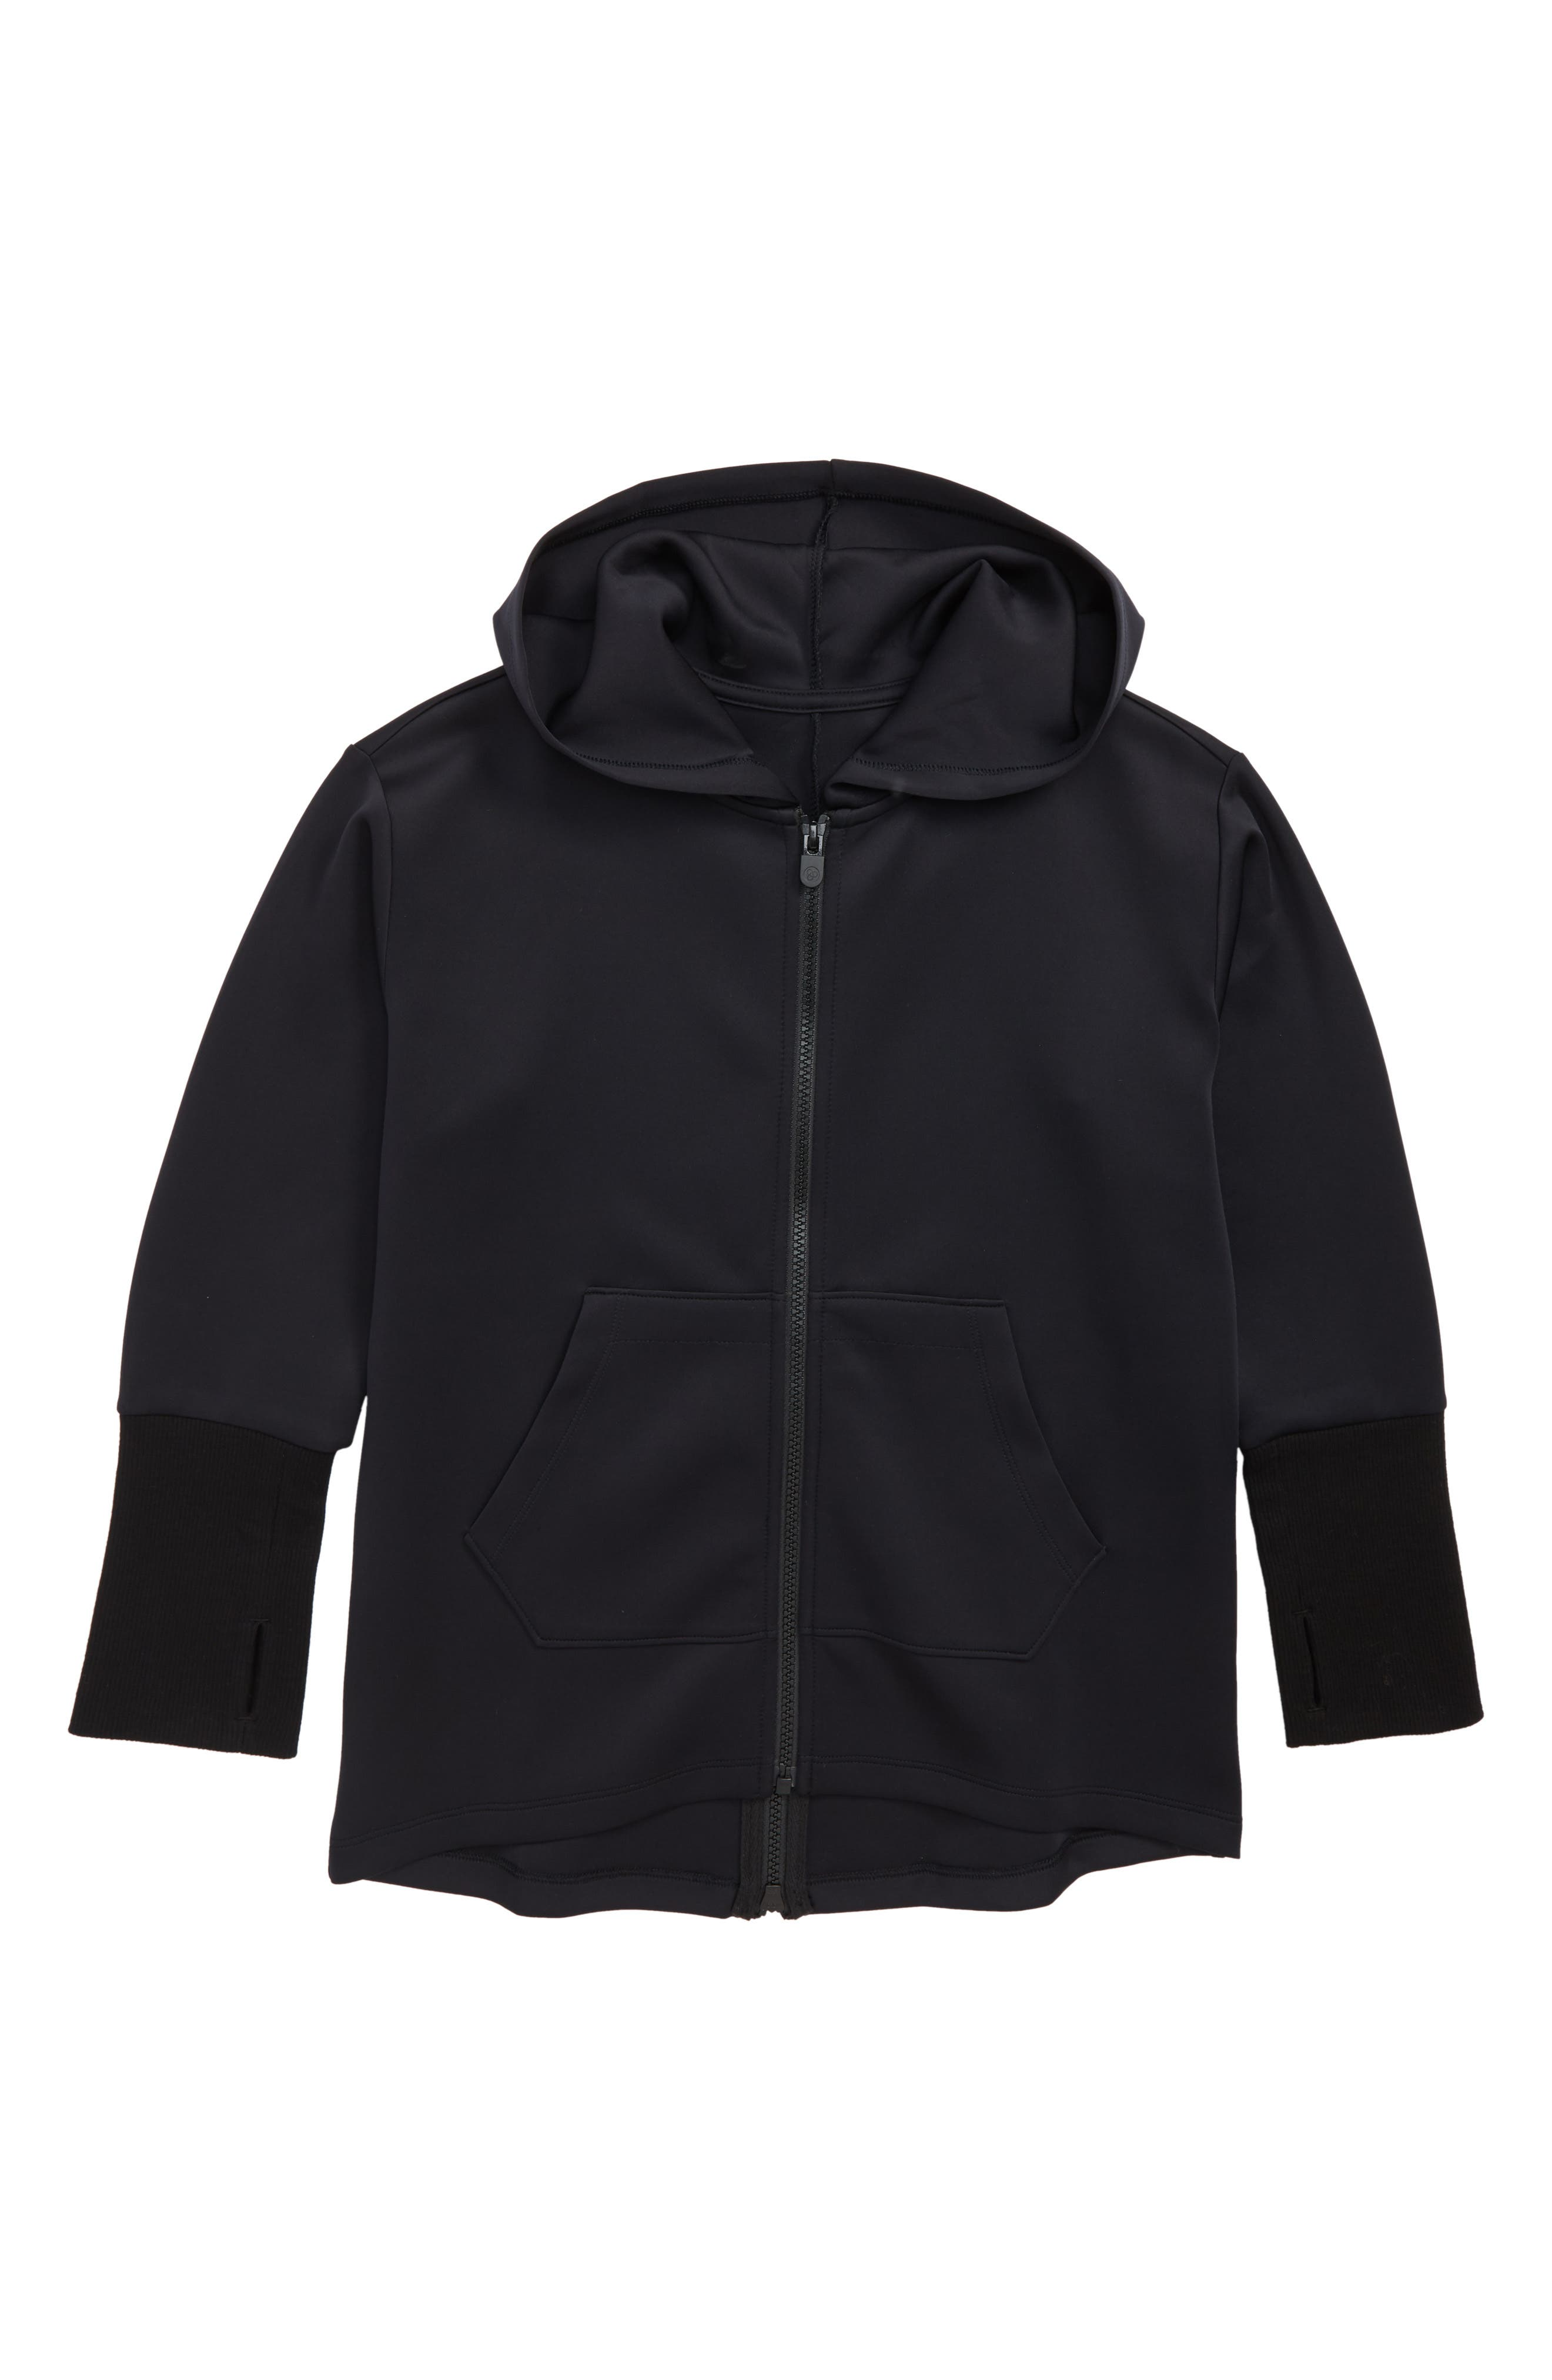 Hooded Zip Jacket,                             Main thumbnail 1, color,                             Black